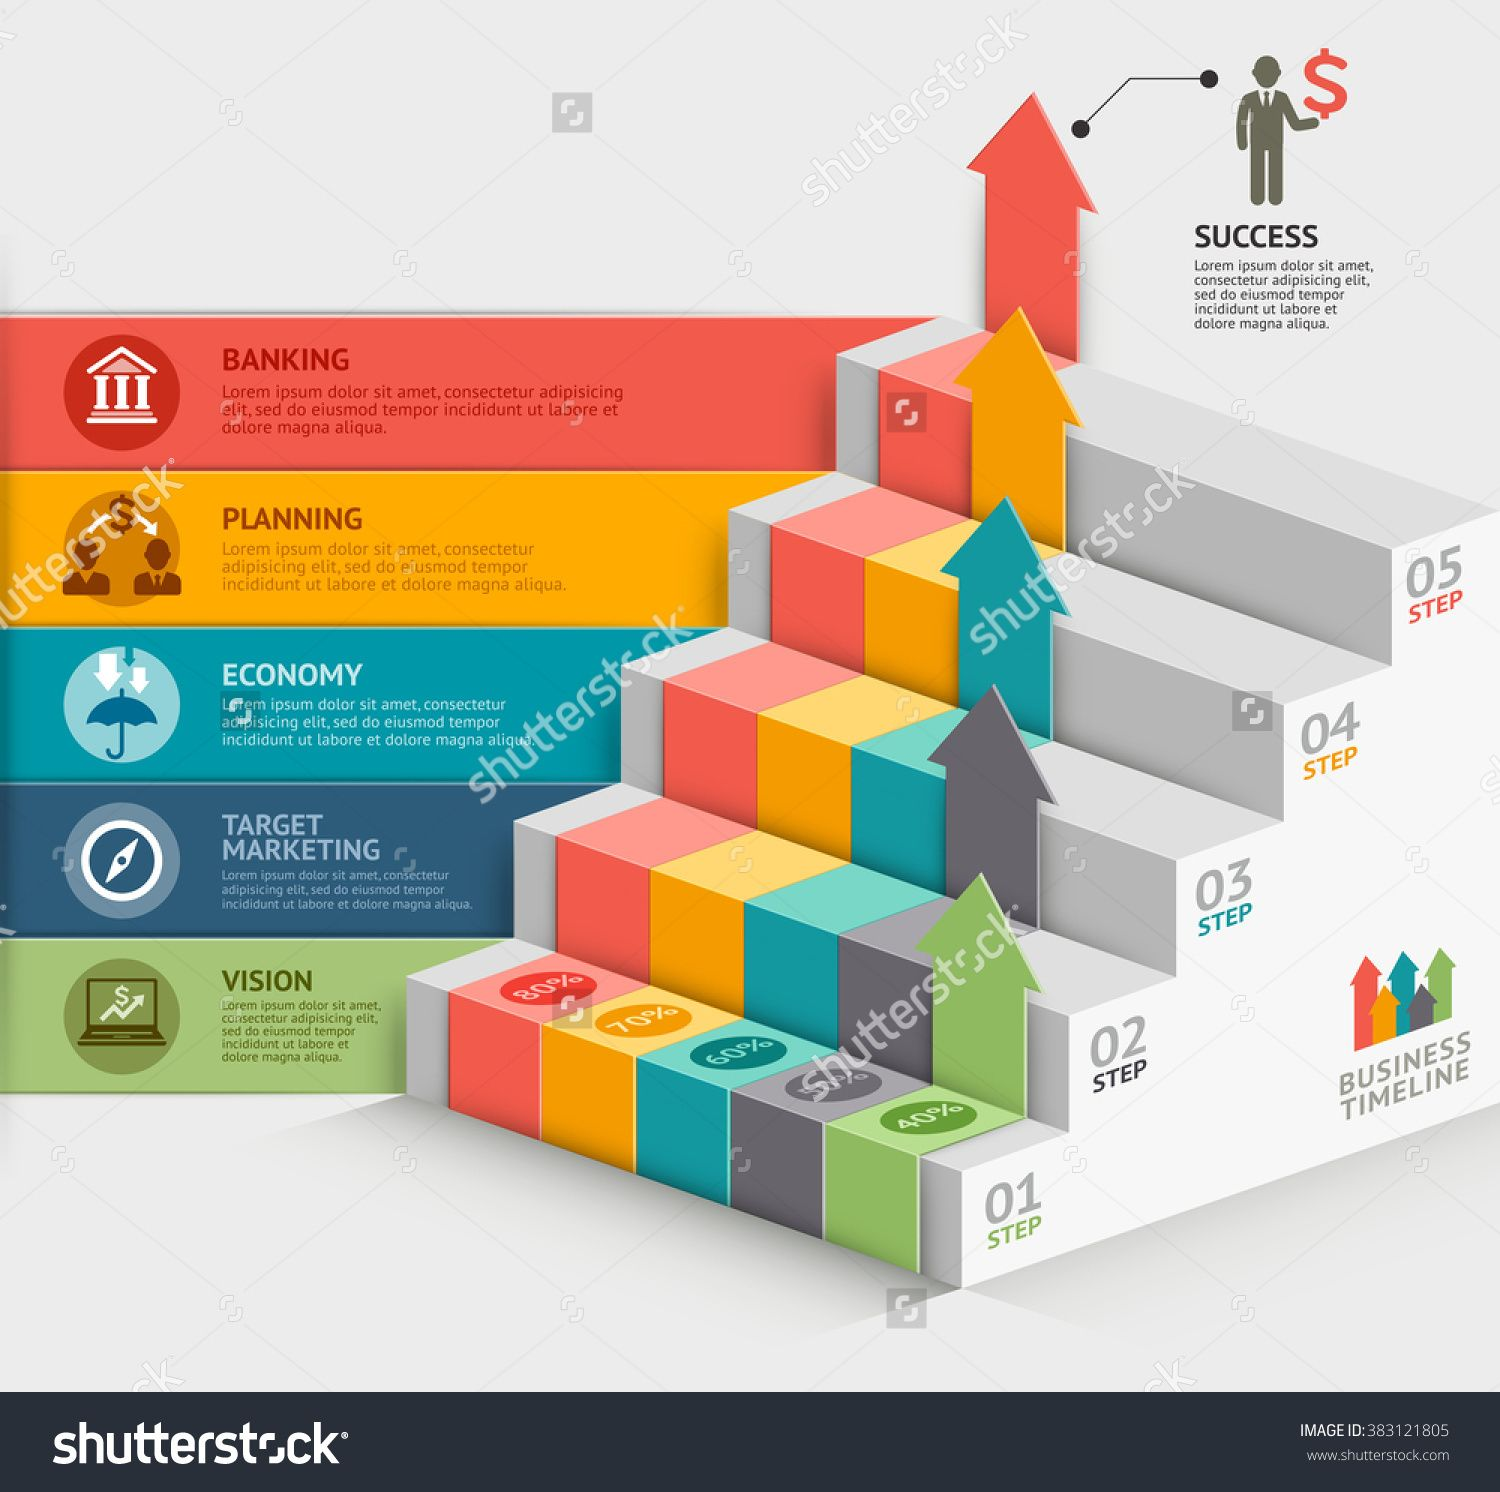 3d Business Staircase Diagram Template. Vector